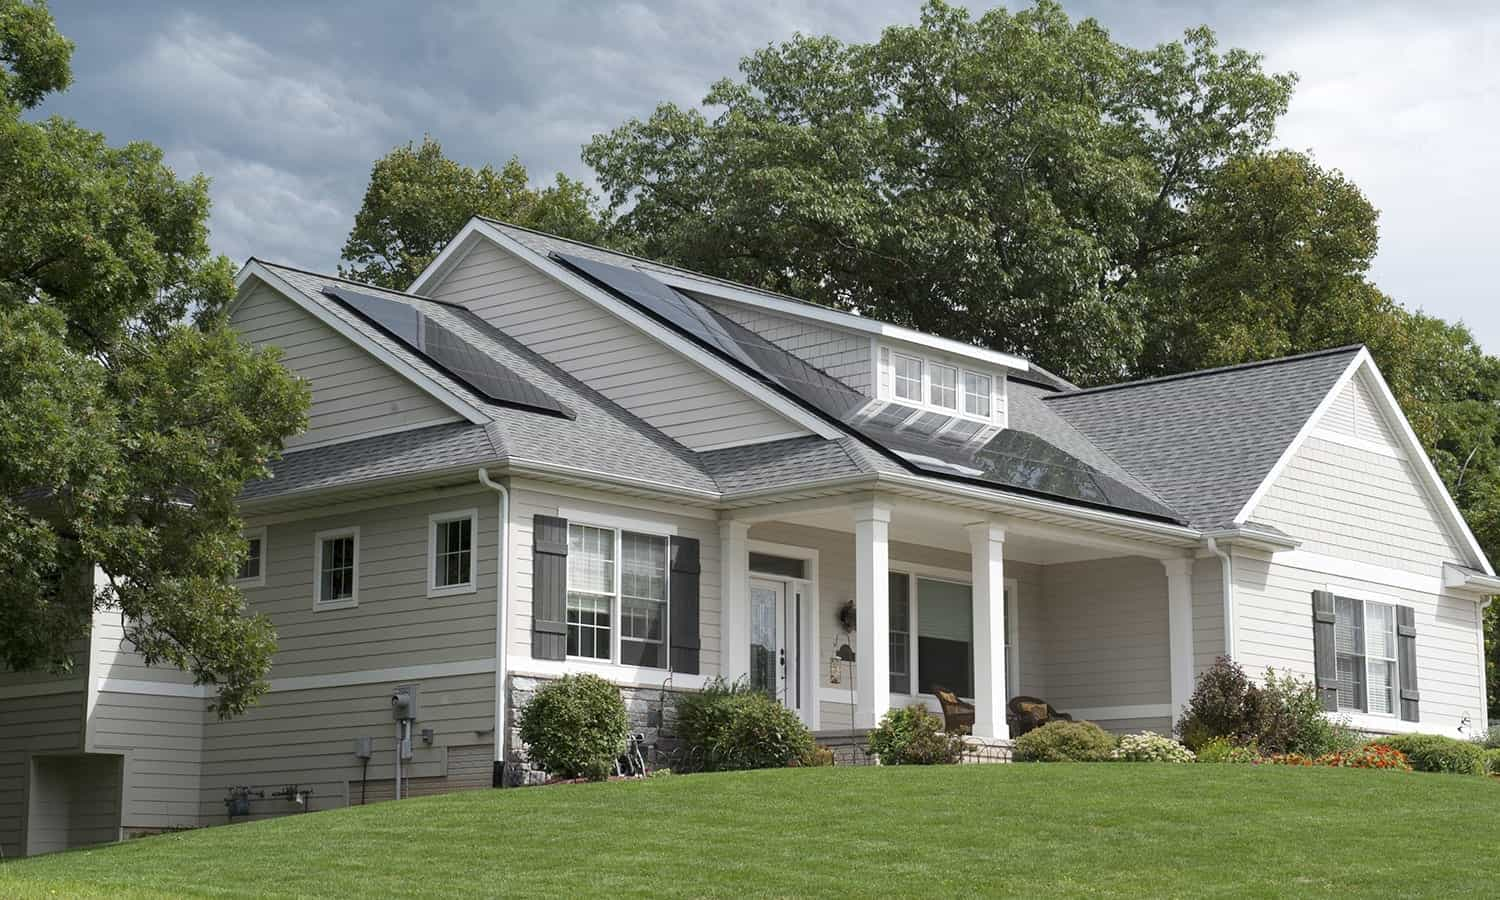 large modern home with frameless solar panels on roof